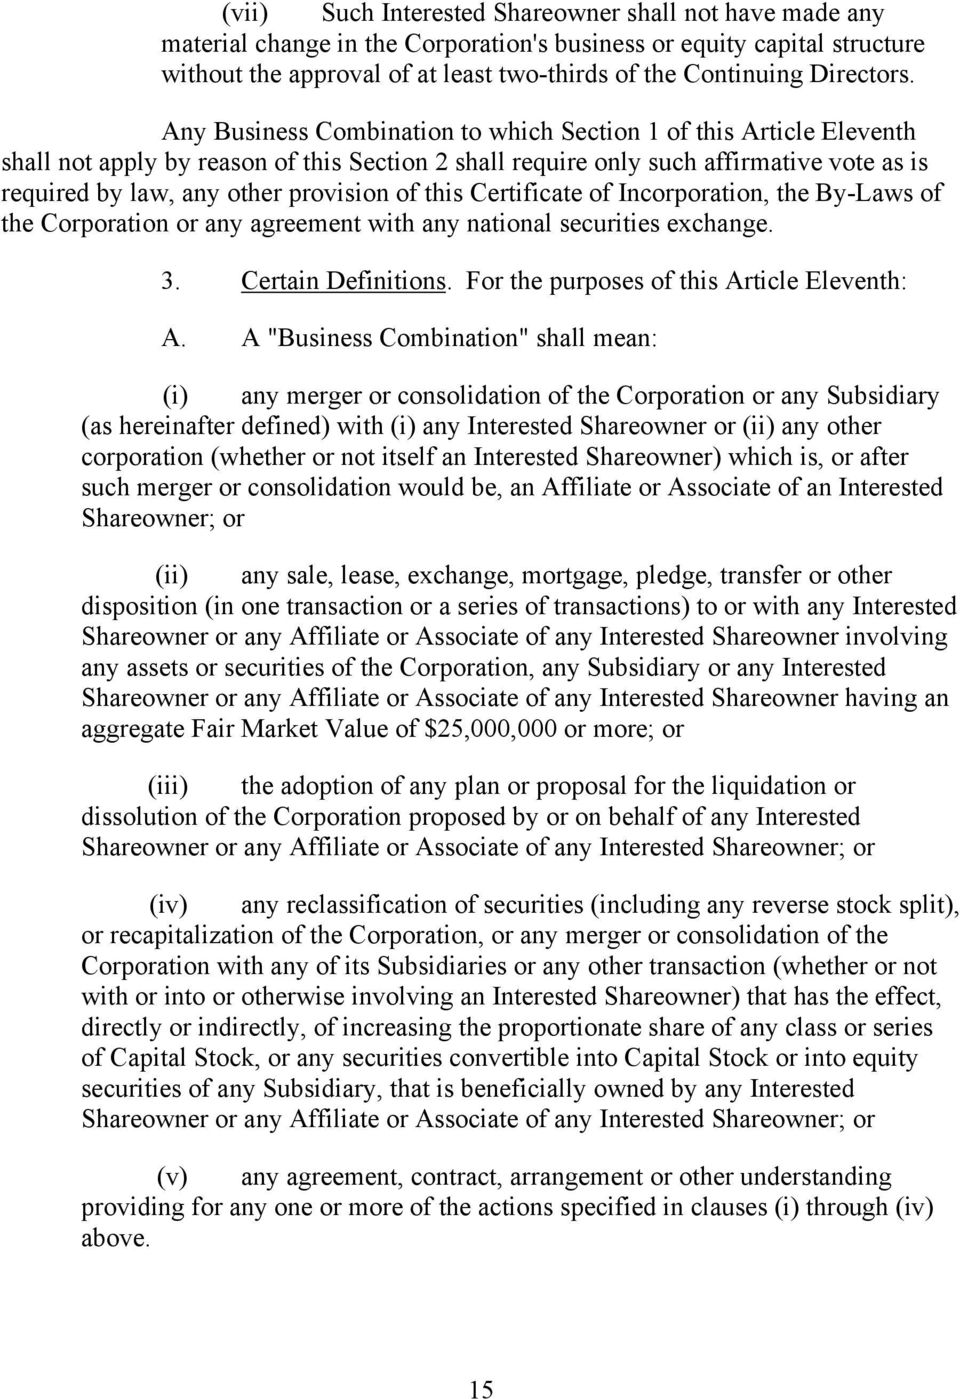 Any Business Combination to which Section 1 of this Article Eleventh shall not apply by reason of this Section 2 shall require only such affirmative vote as is required by law, any other provision of